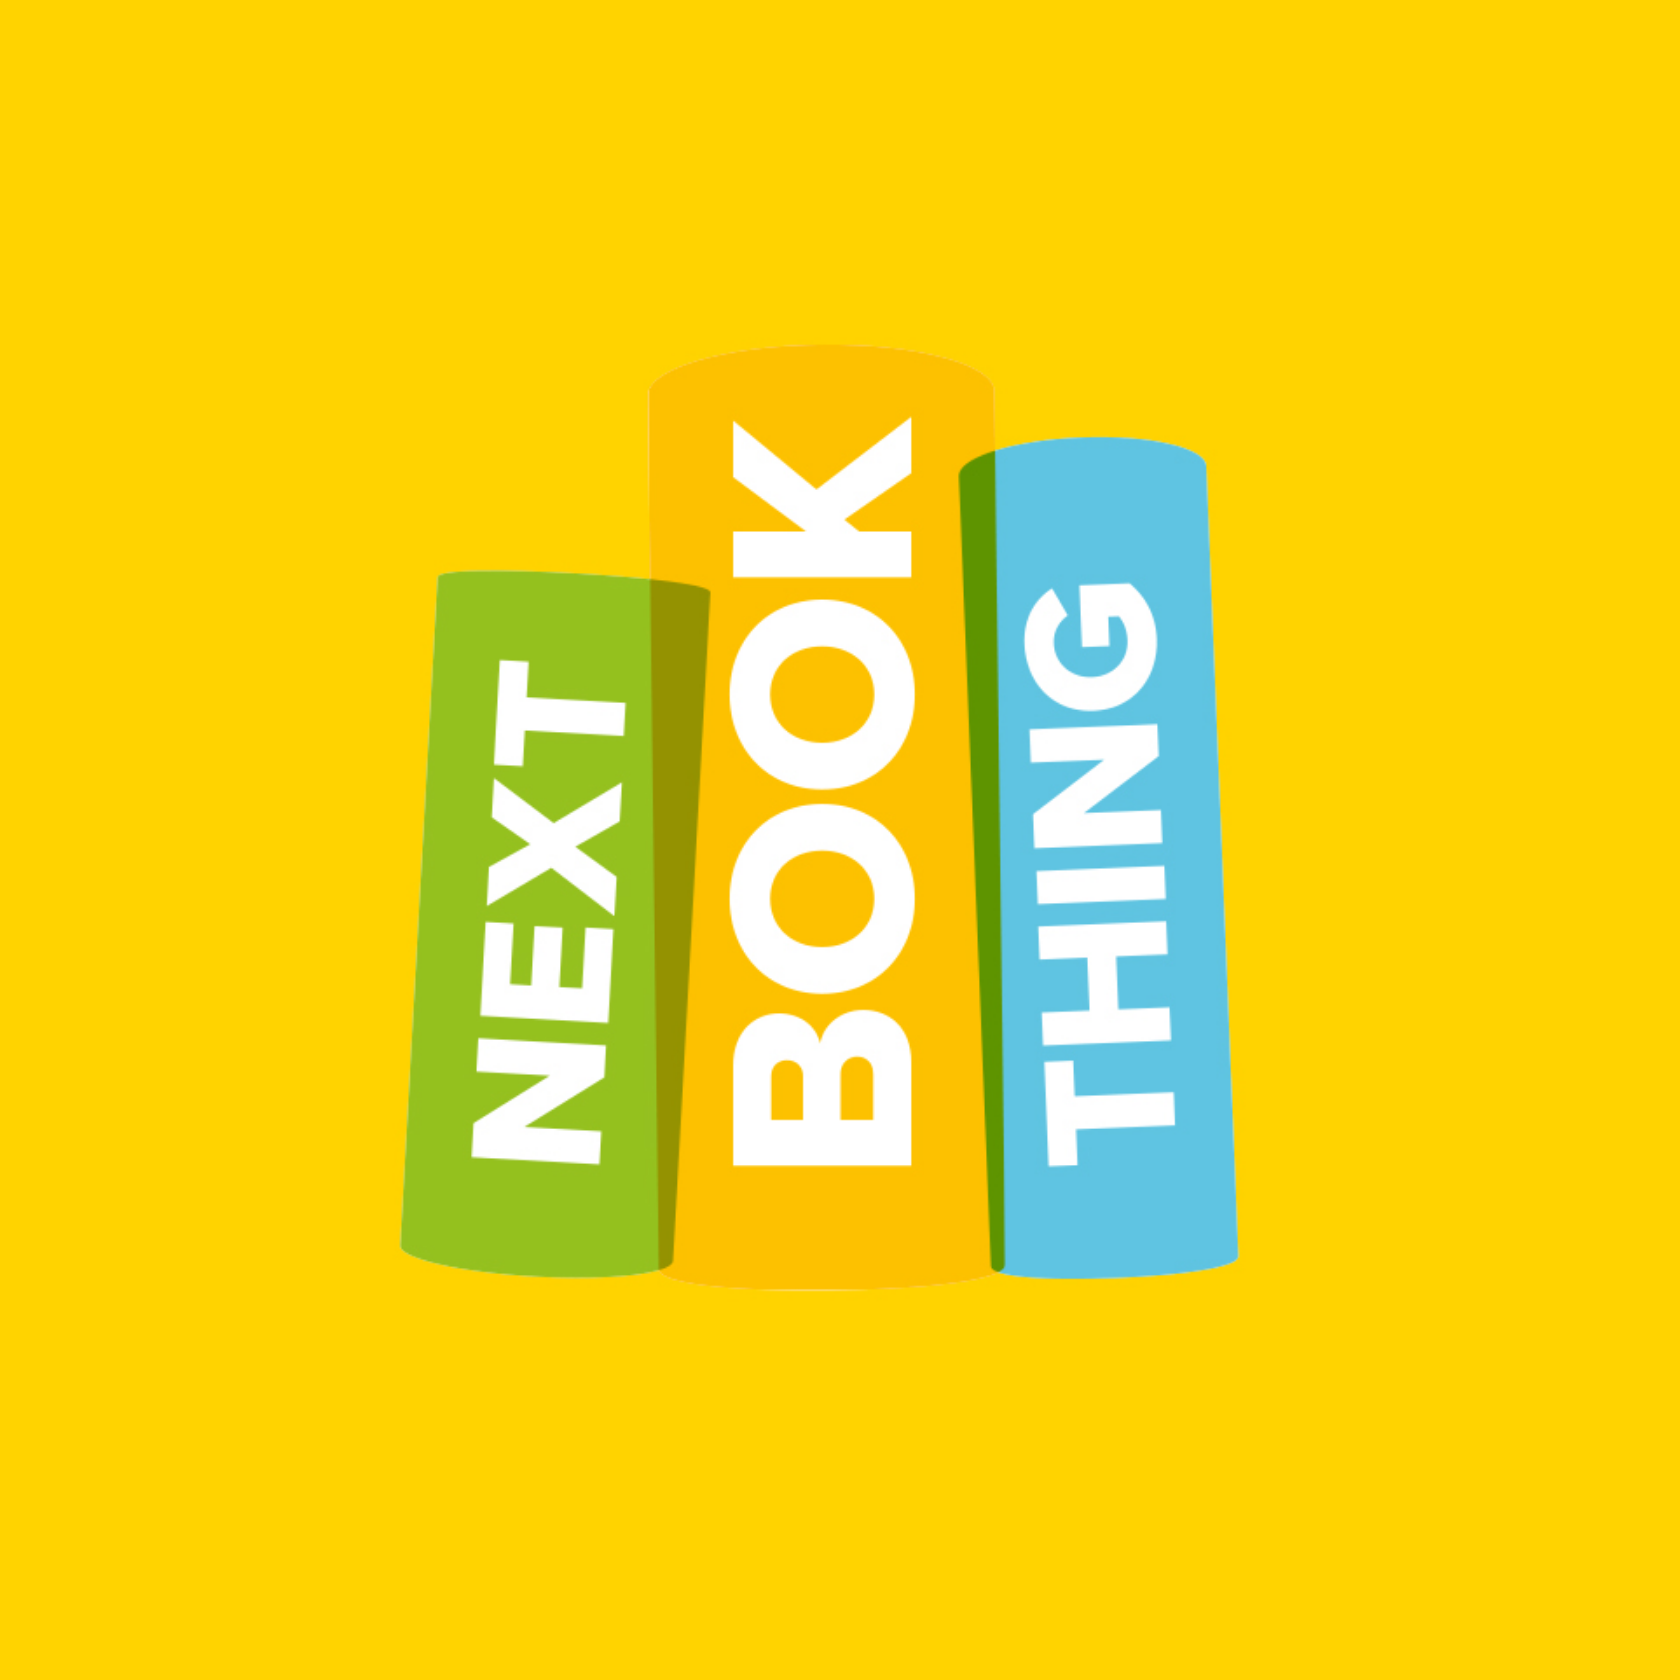 Next Book Thing - brand identity and web design